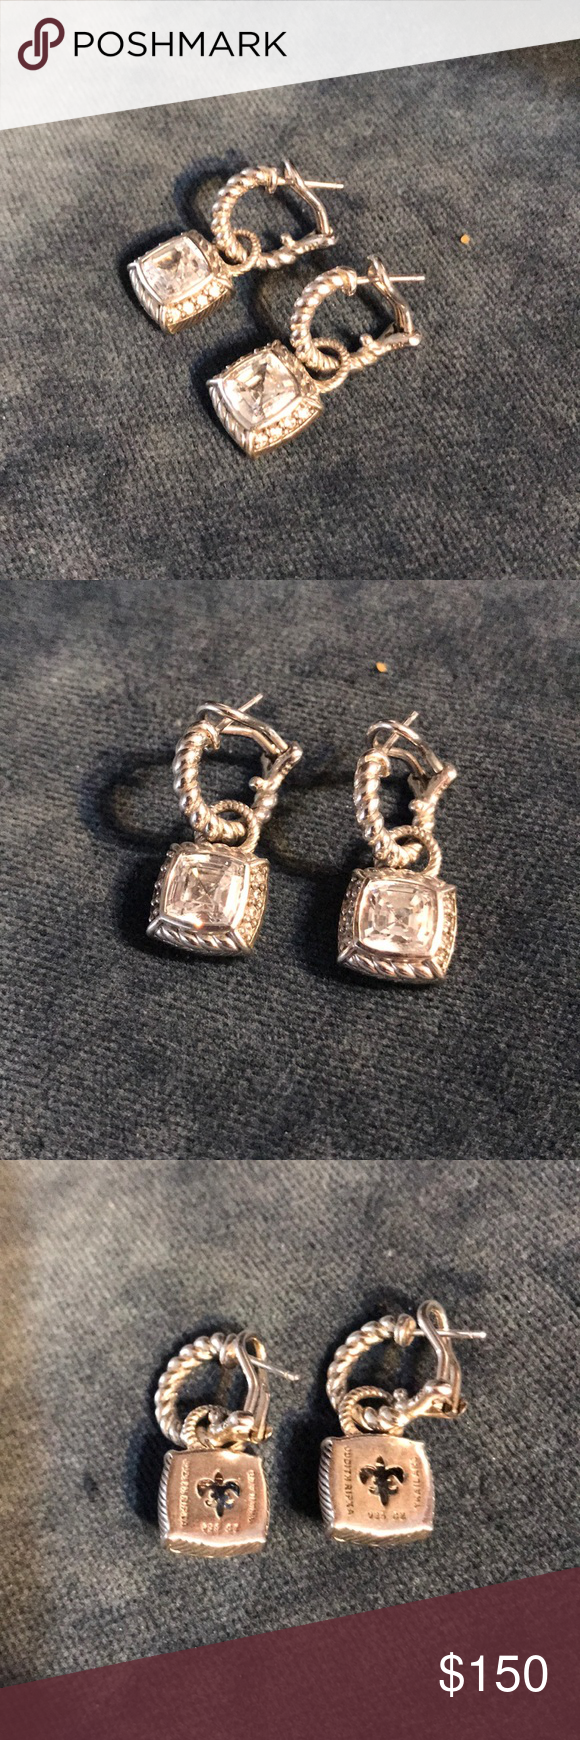 Cz Sterling Judith Ripka Earrings Silver And Charm Signed